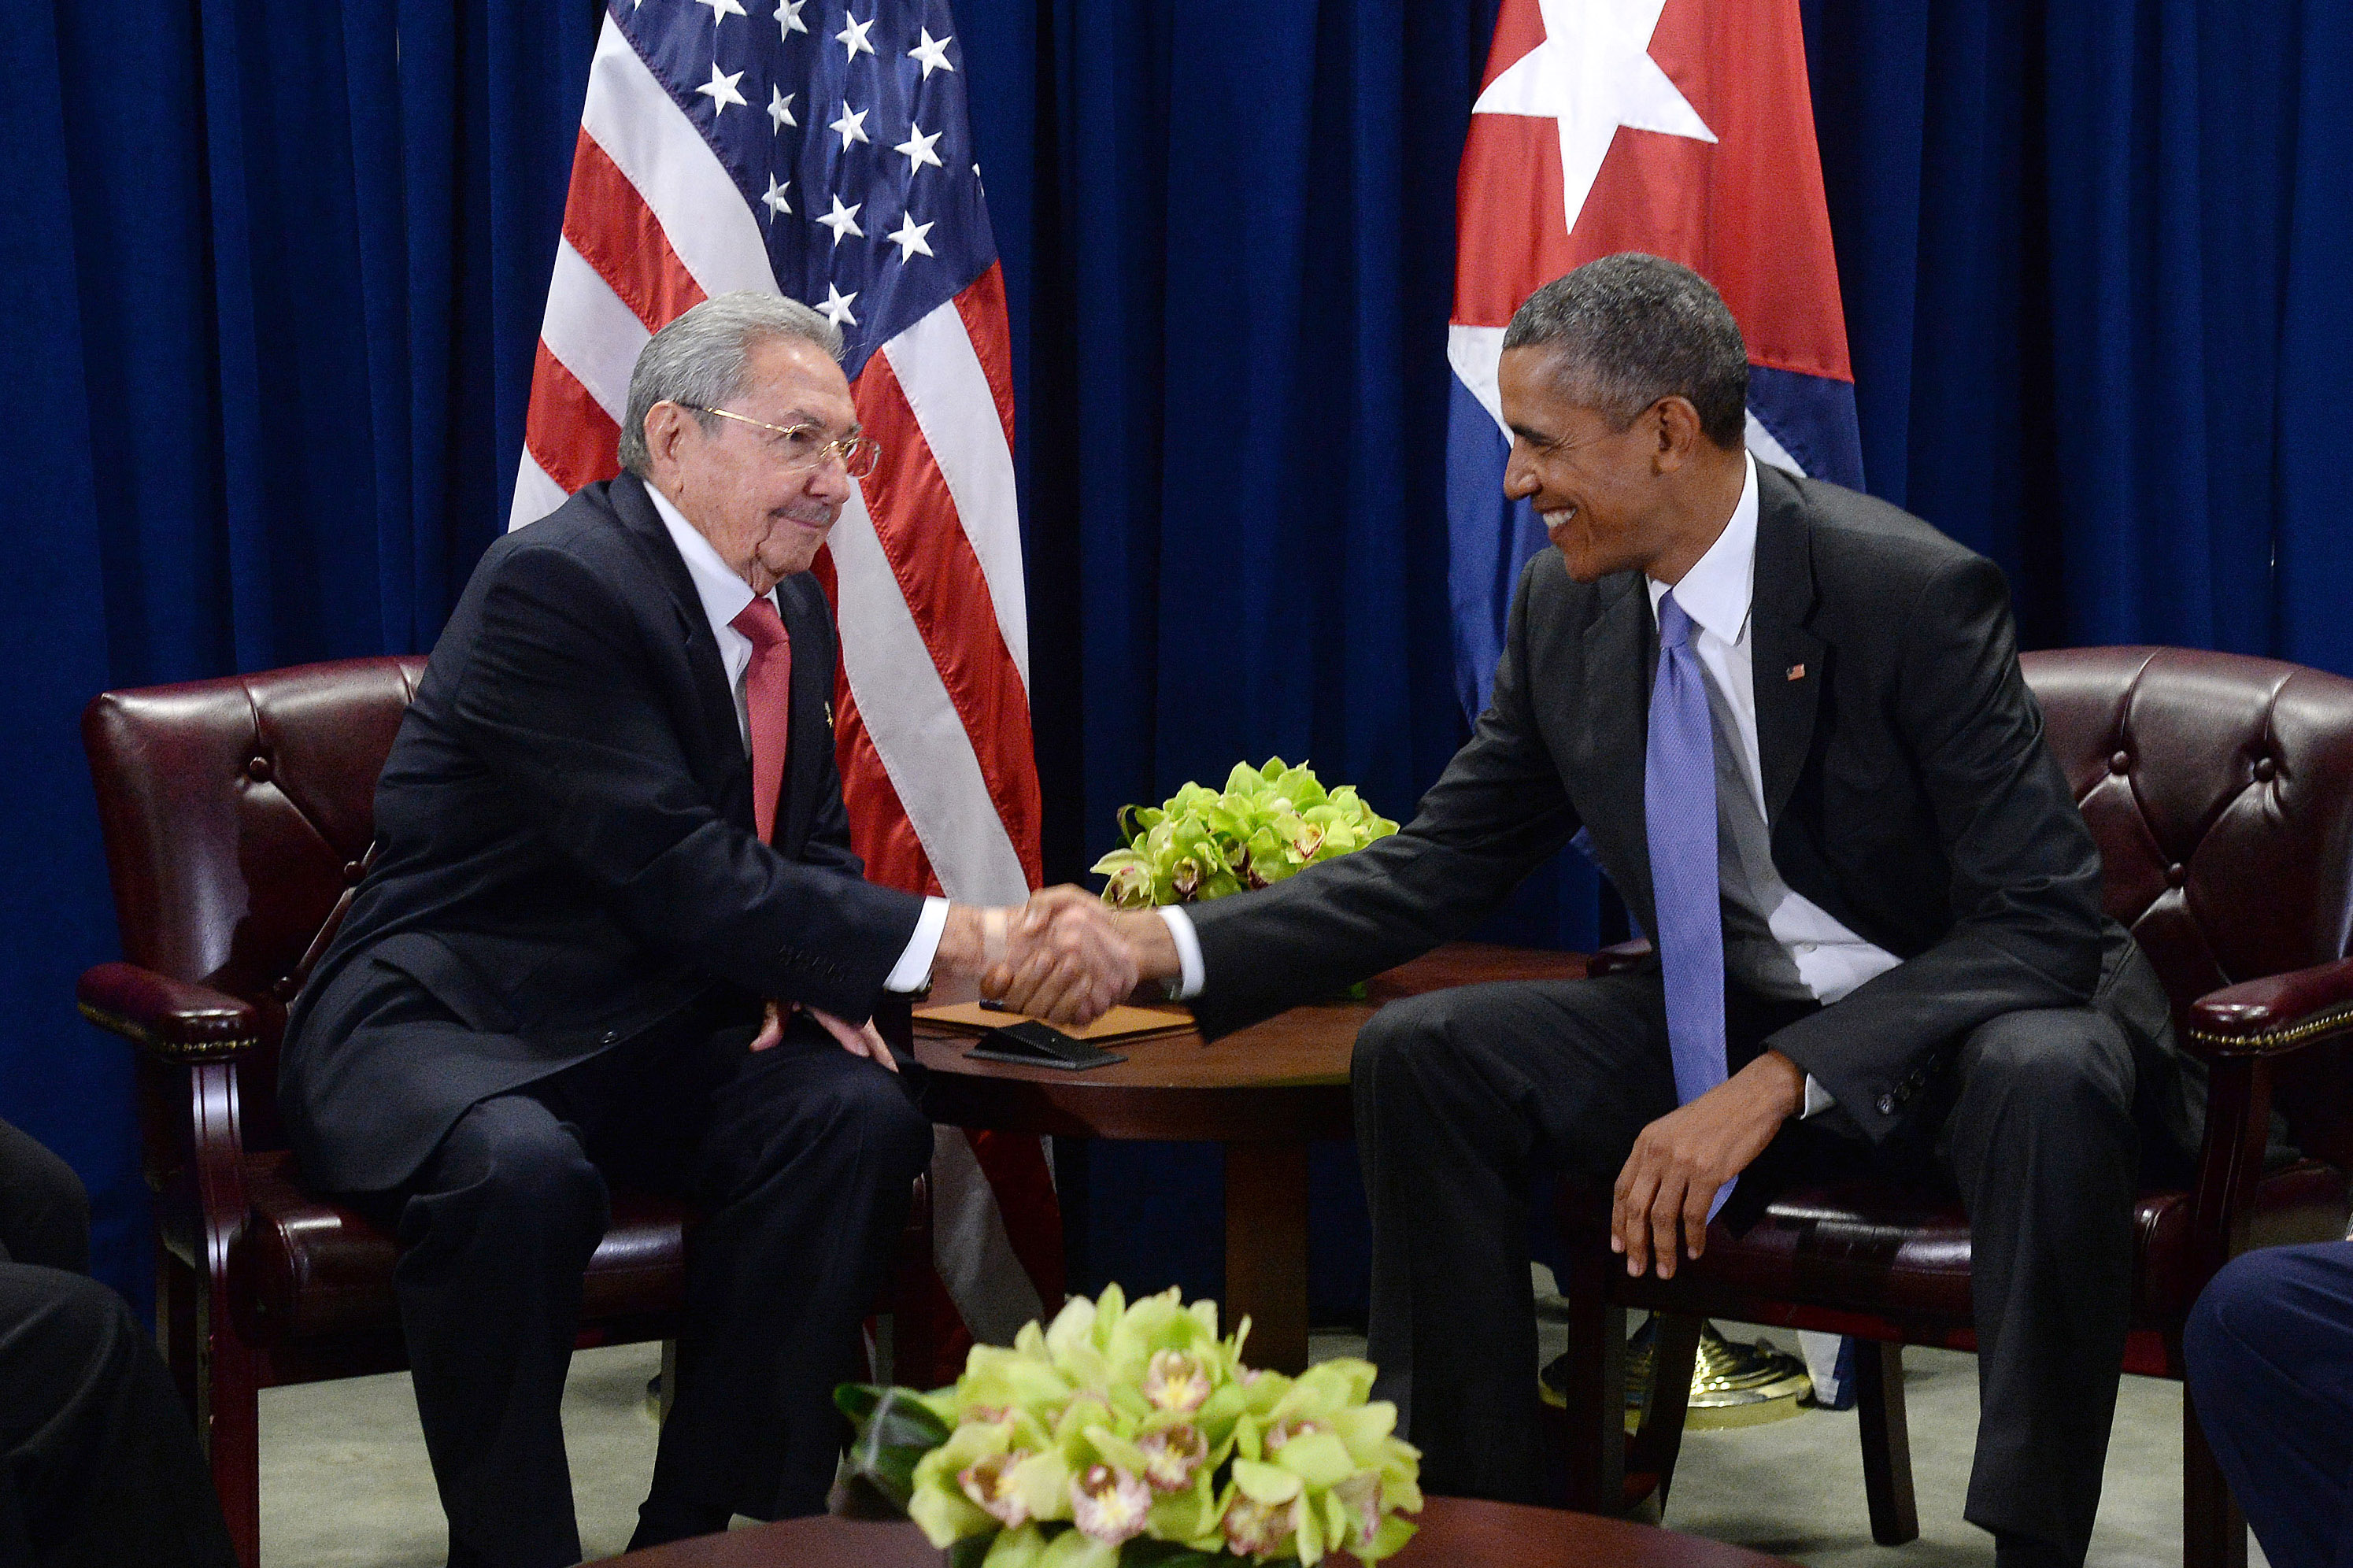 U.S. President Barack Obama (R) and President Raul Castro (L) of Cuba shake hands during a bilateral meeting at the United Nations Headquarters on September 29, 2015 in New York City.  Castro and Obama are in New York City to attend the 70th anniversary general assembly meetings. (Photo by Anthony Behar-Pool/Getty Images)